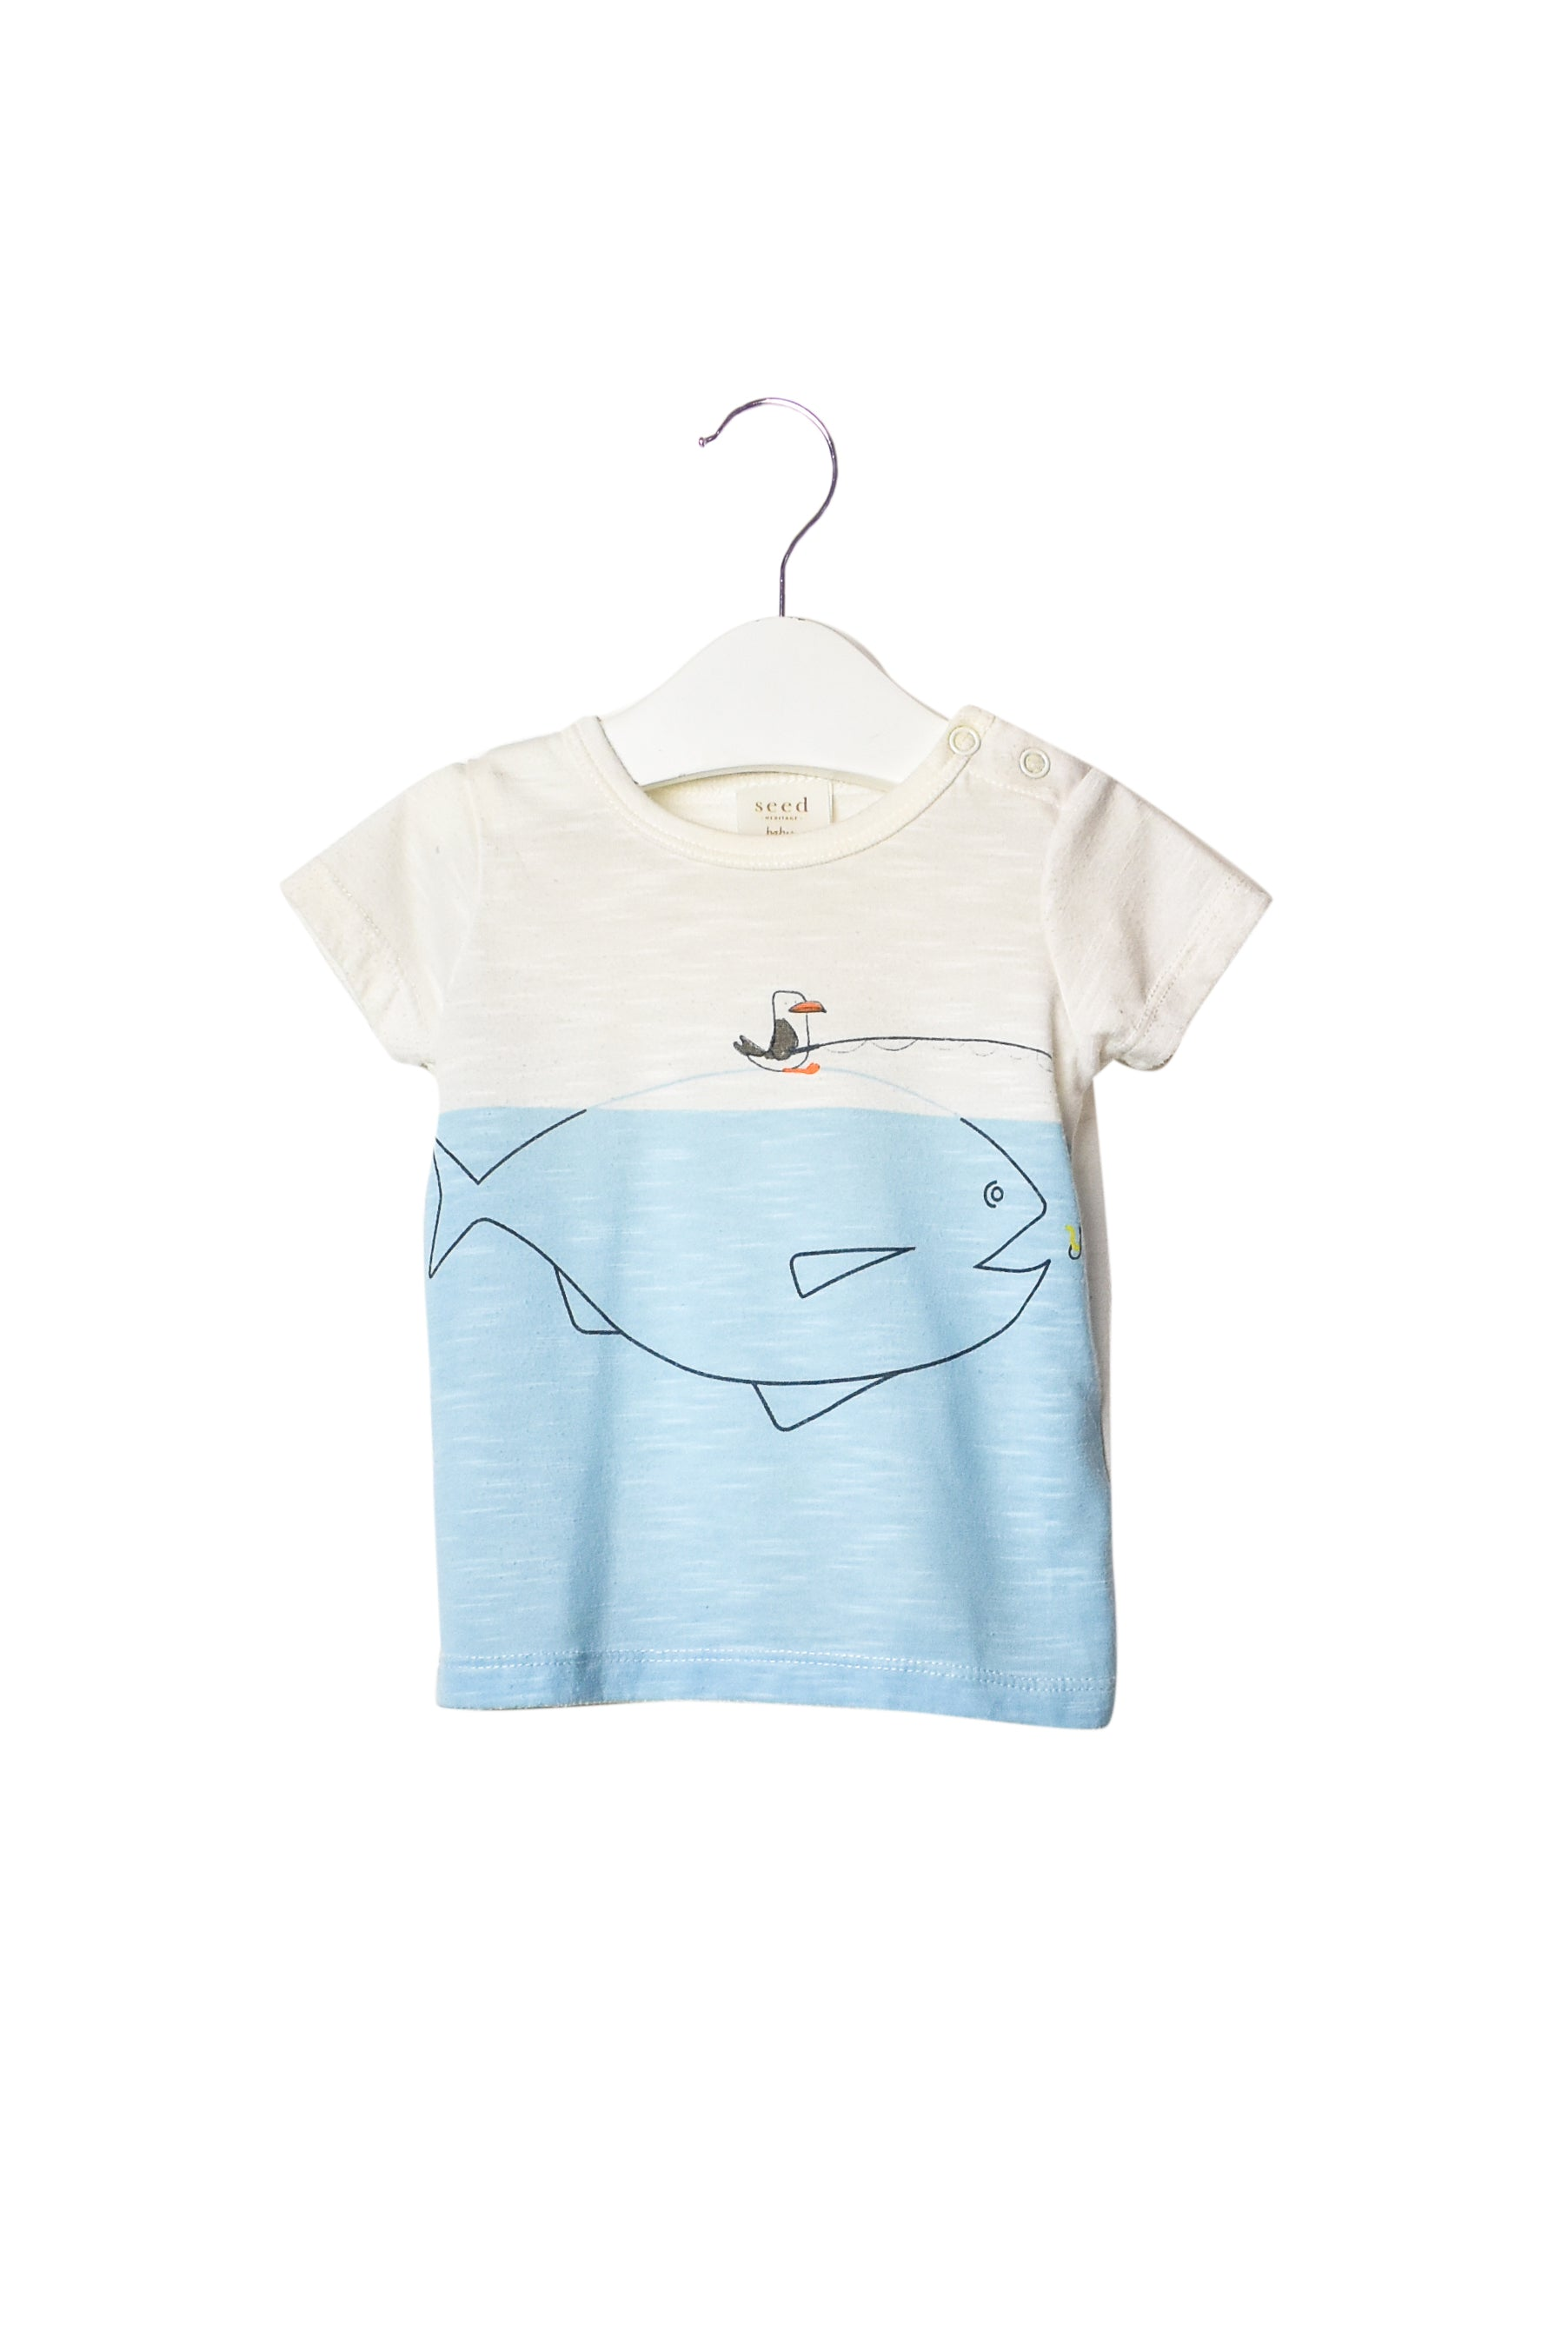 10007976 Seed Baby~ T-Shirt 0-3M at Retykle